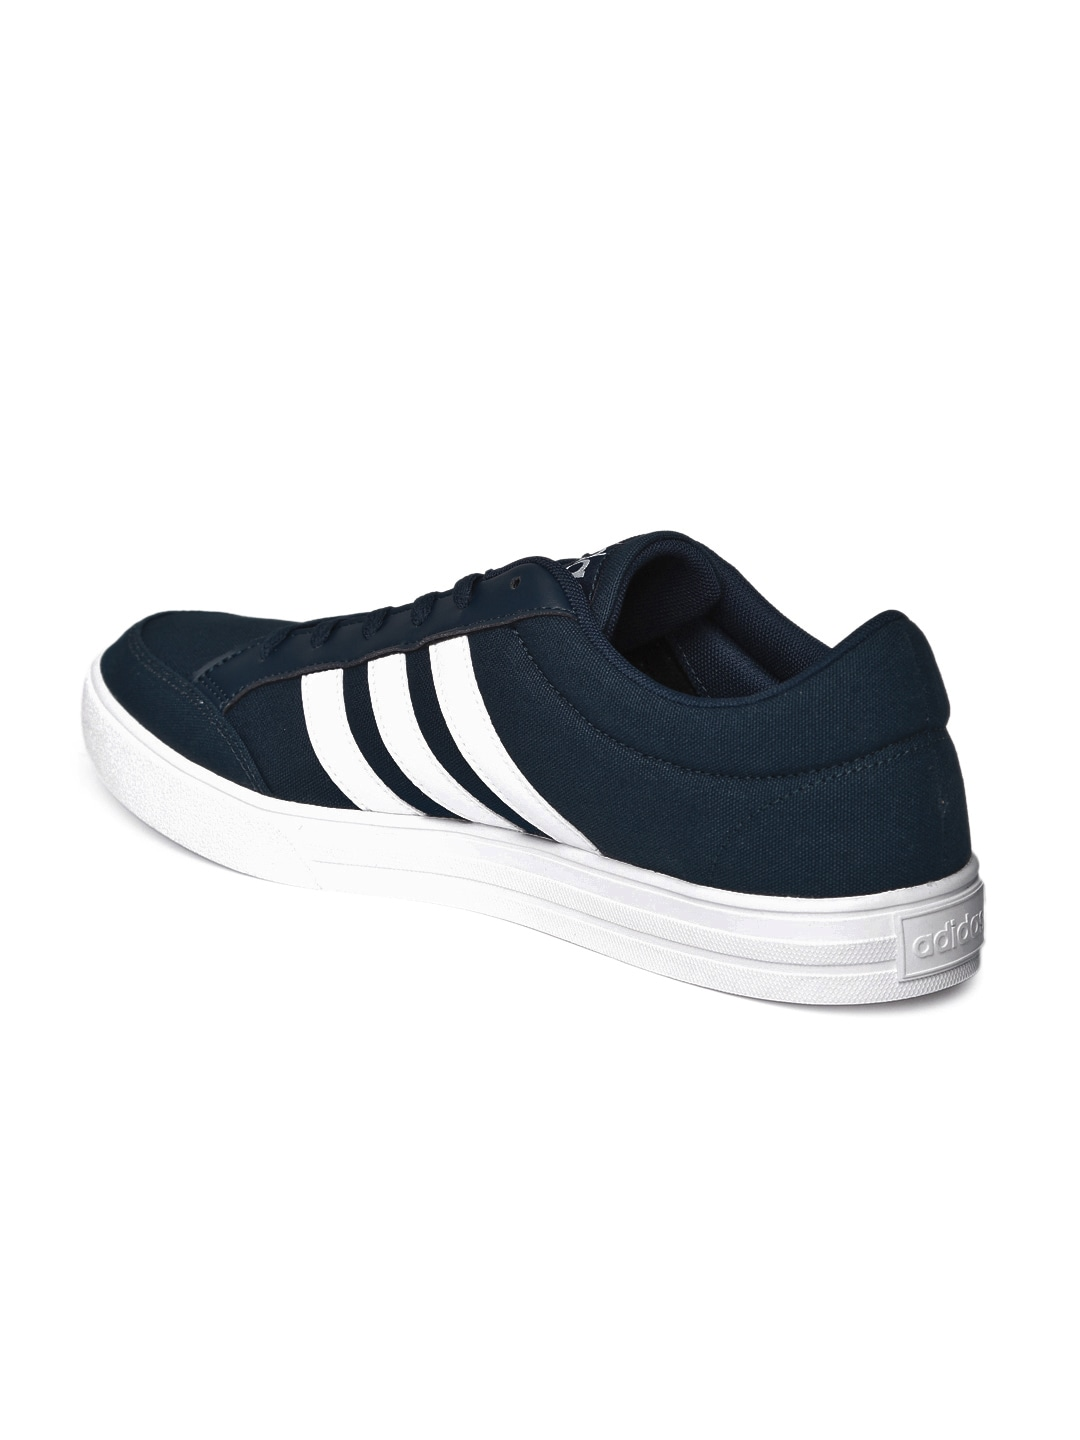 Adidas Neo Fit Foam Shoes